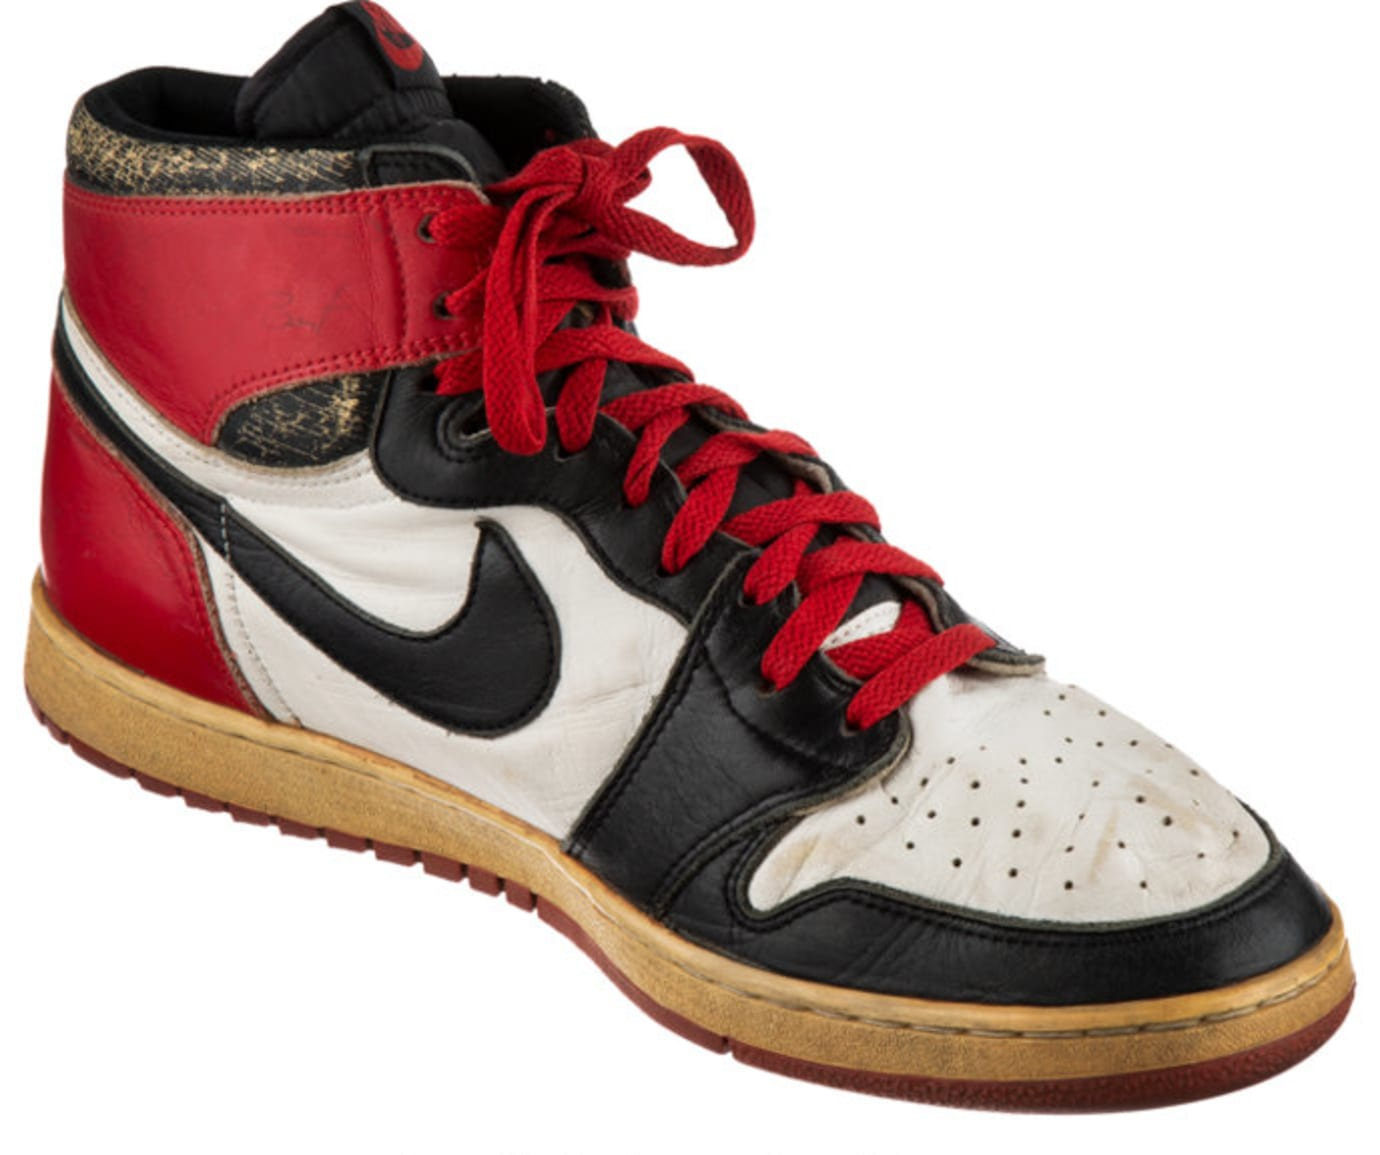 Game Worn, Autographed 1984-1985 Air Jordan 1 'Black Toe' 1